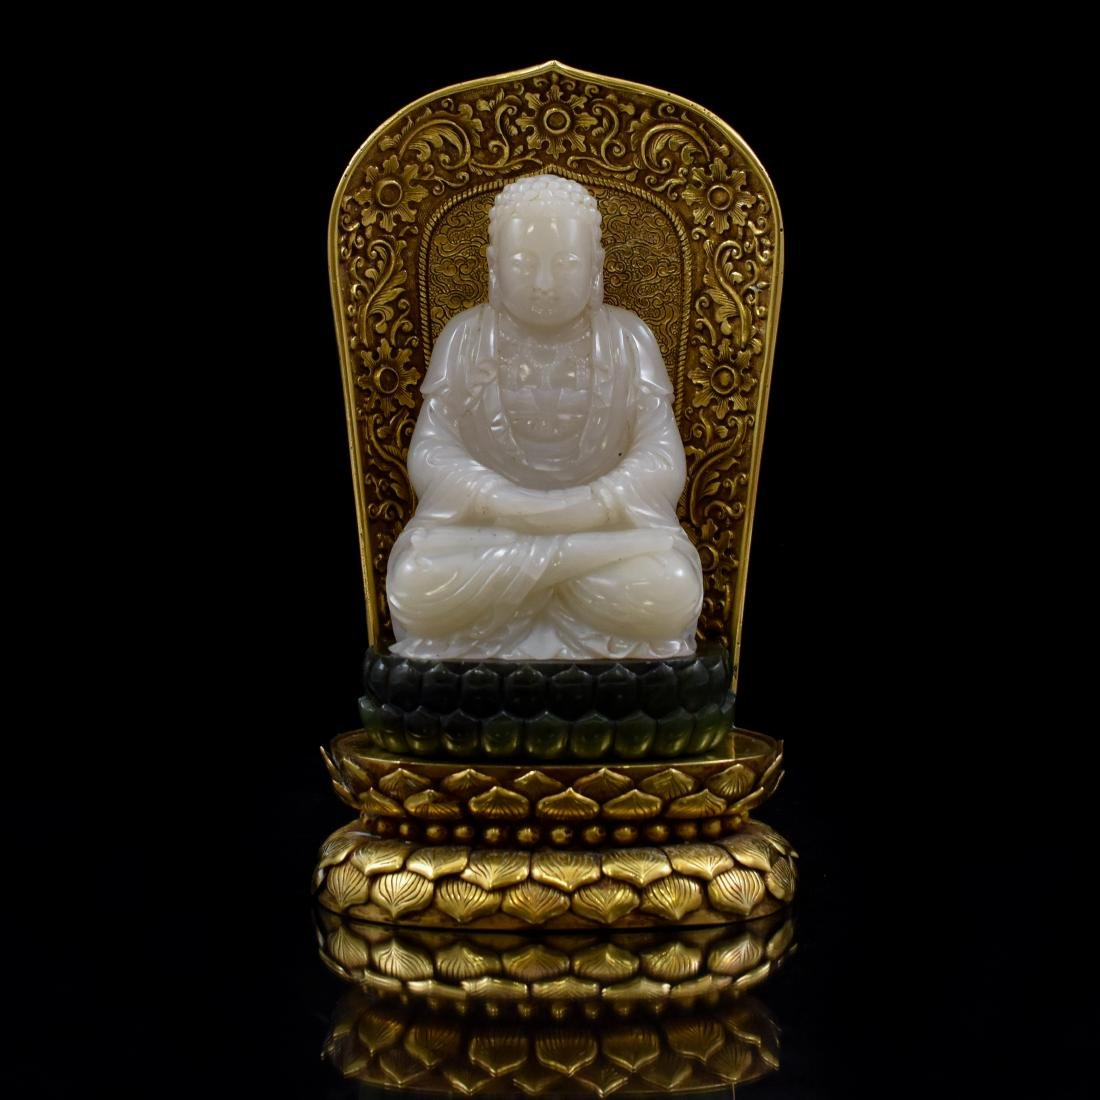 GREEN & WHITE JADE BUDDHA ON GILT BRONZE AURA THRONE